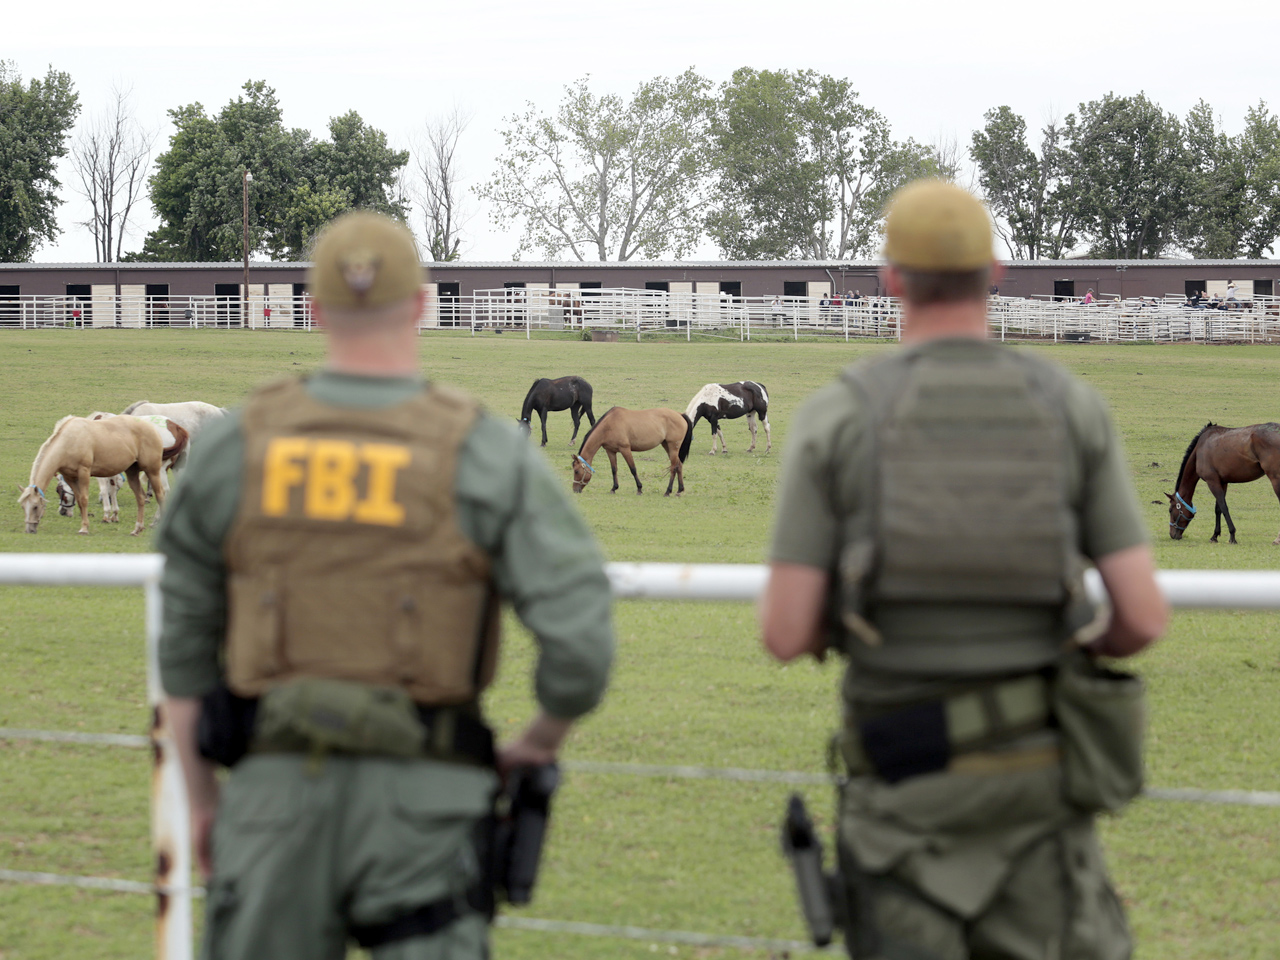 Okla  horse ranch raided for alleged cartel ties - CBS News